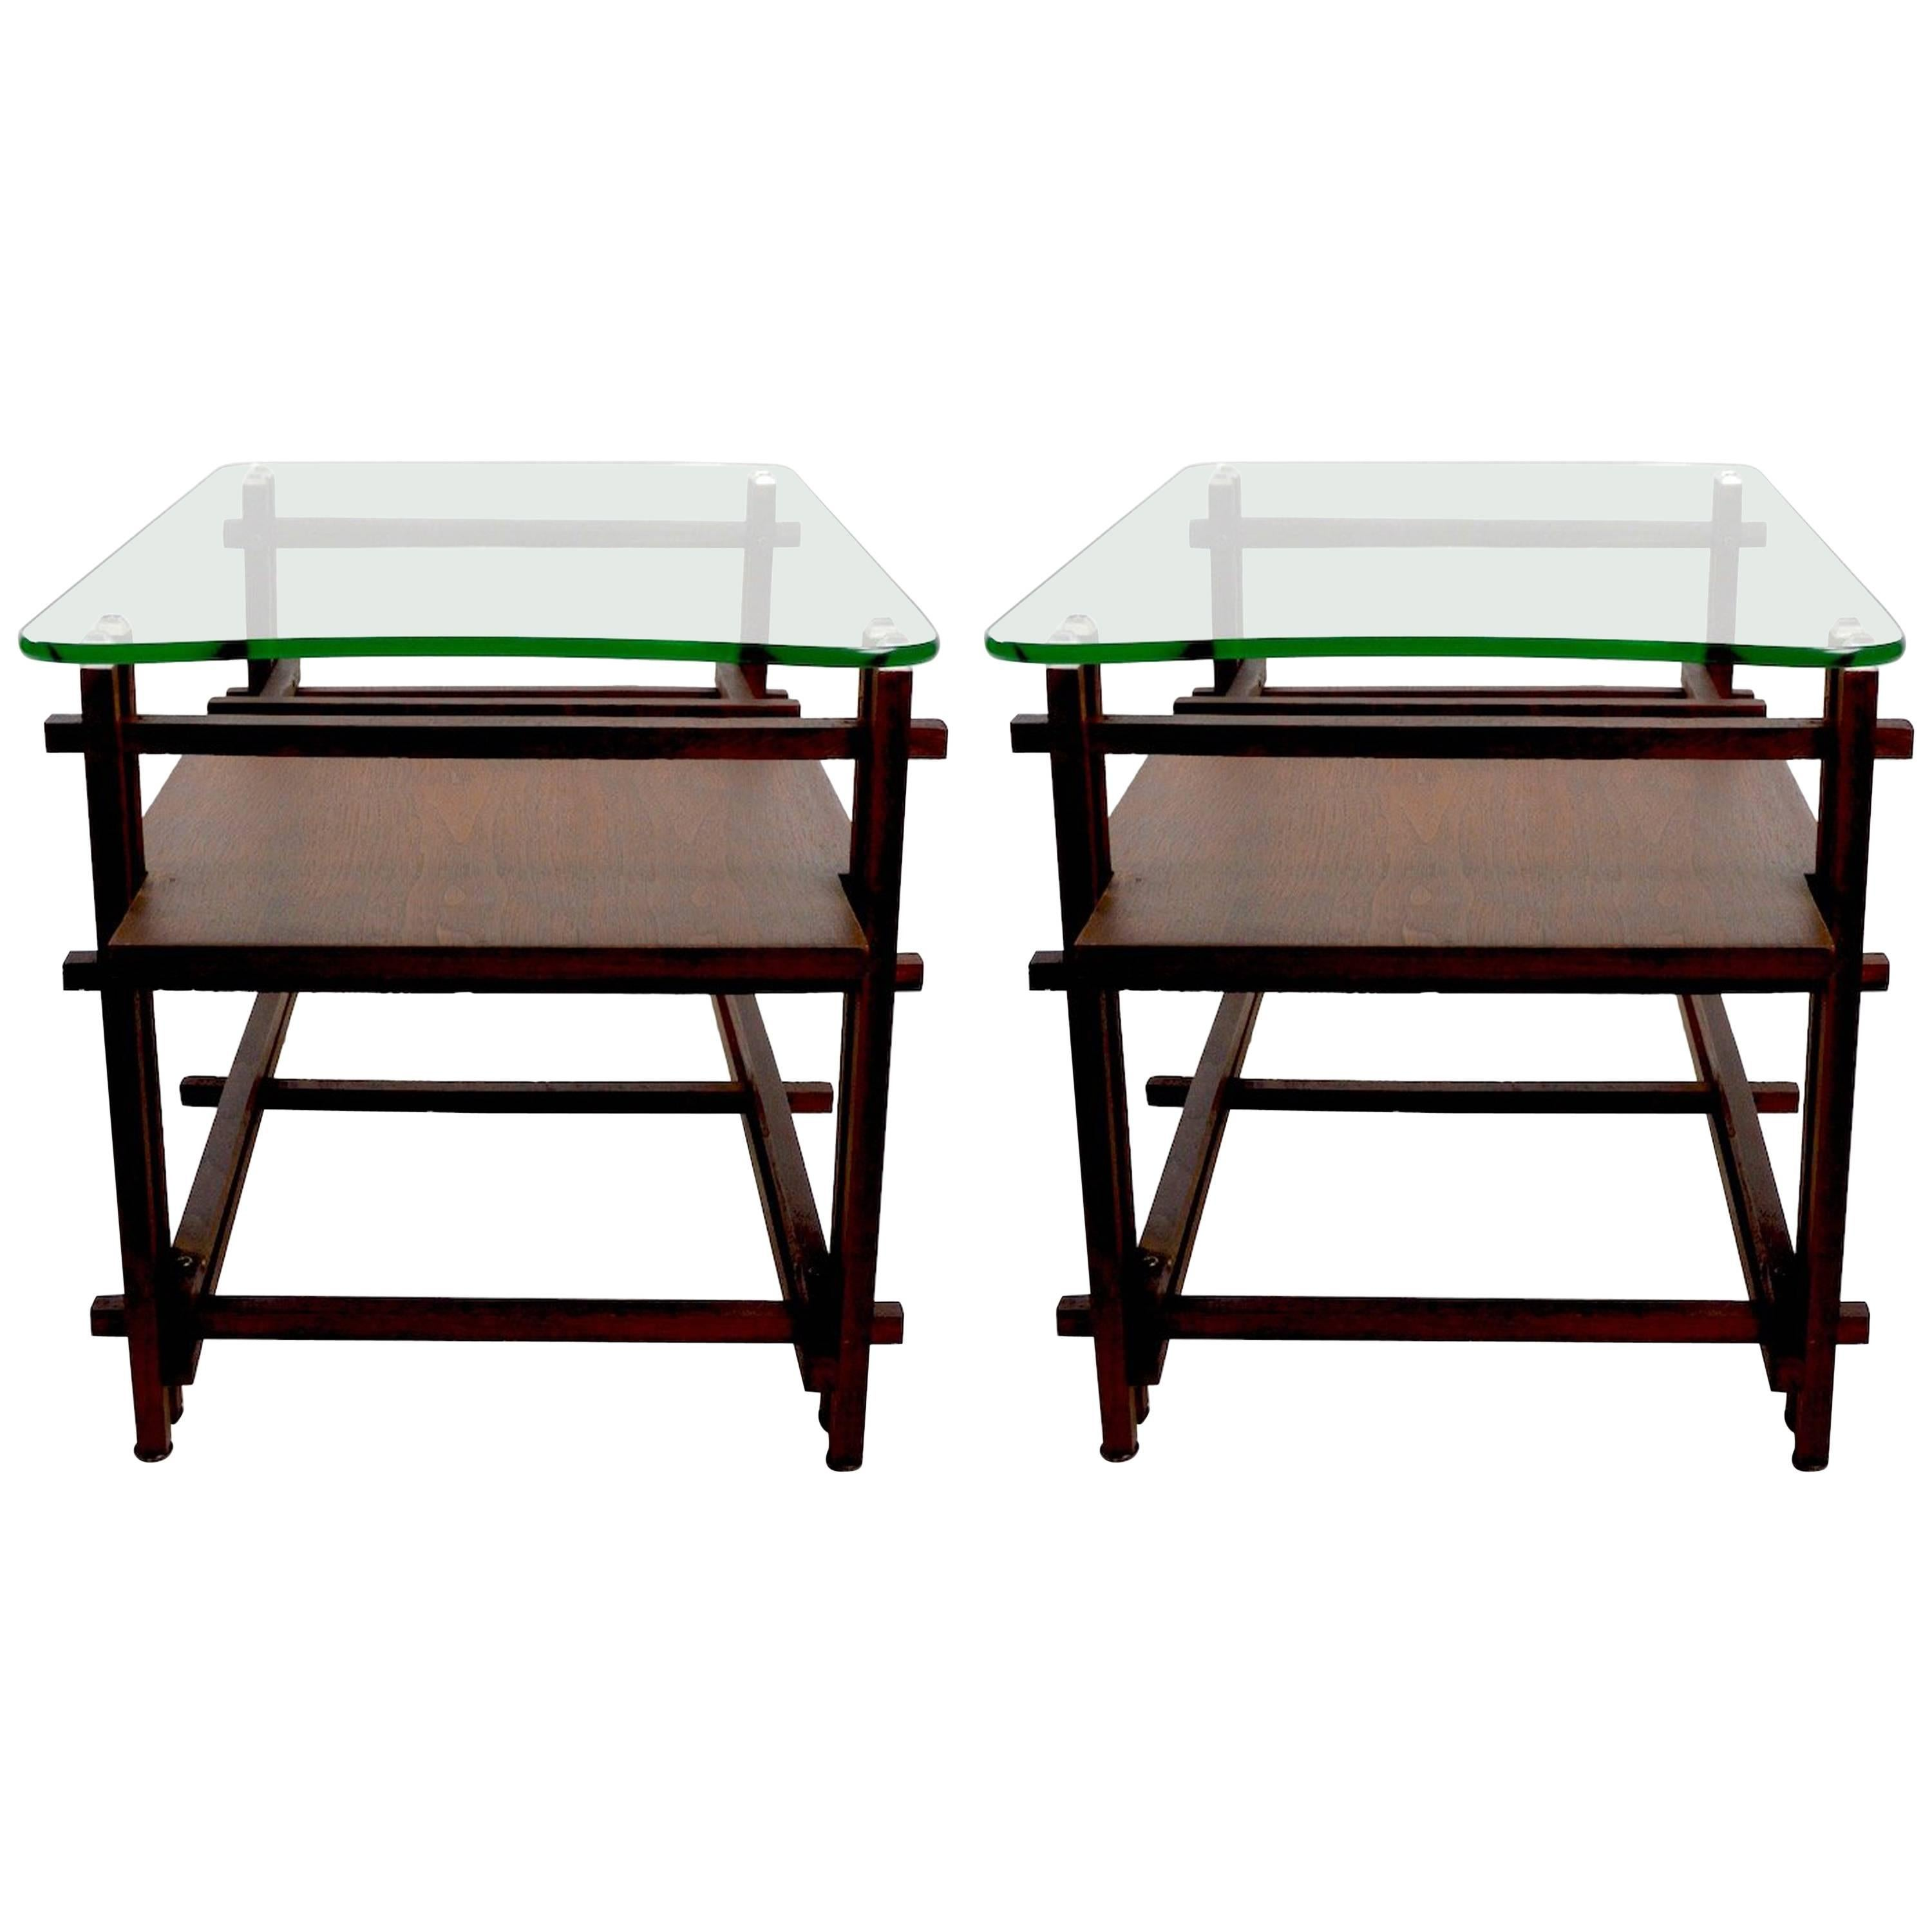 Pair of Architectural Glass and Wood Tables After Henning Norgaard for Komfort